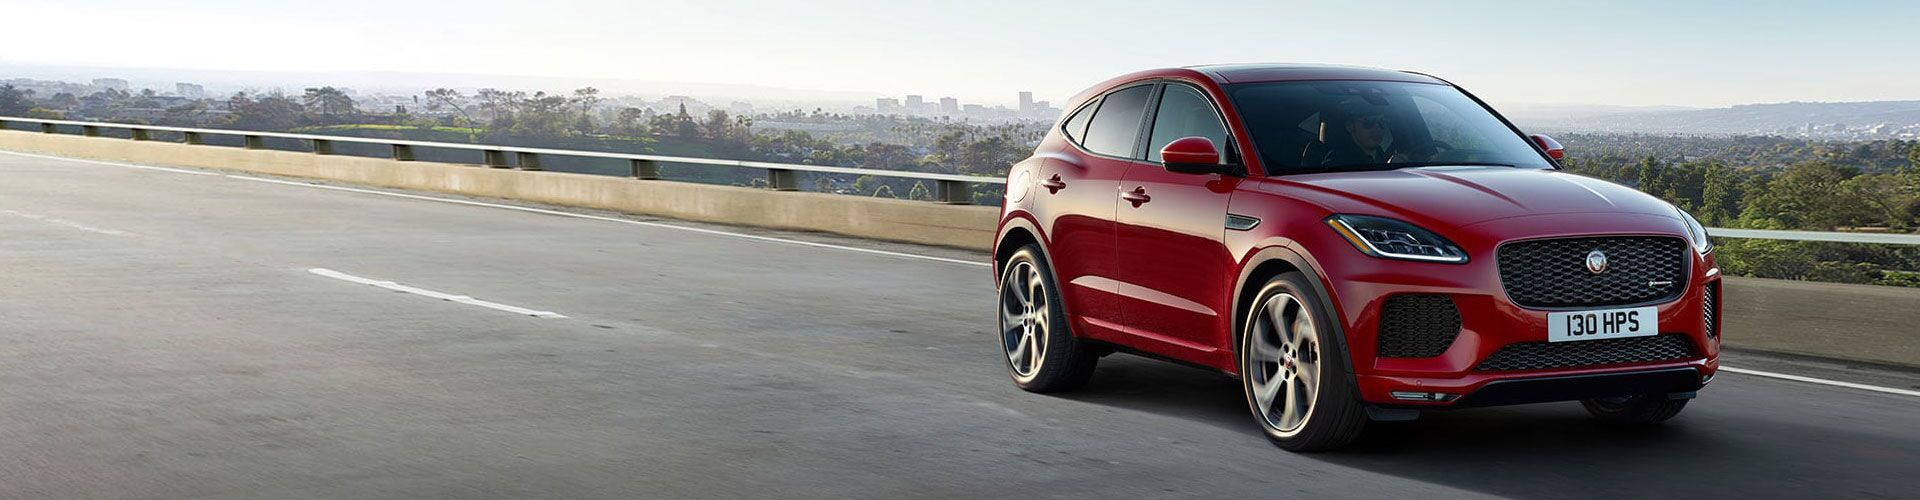 2019 E-PACE Lease